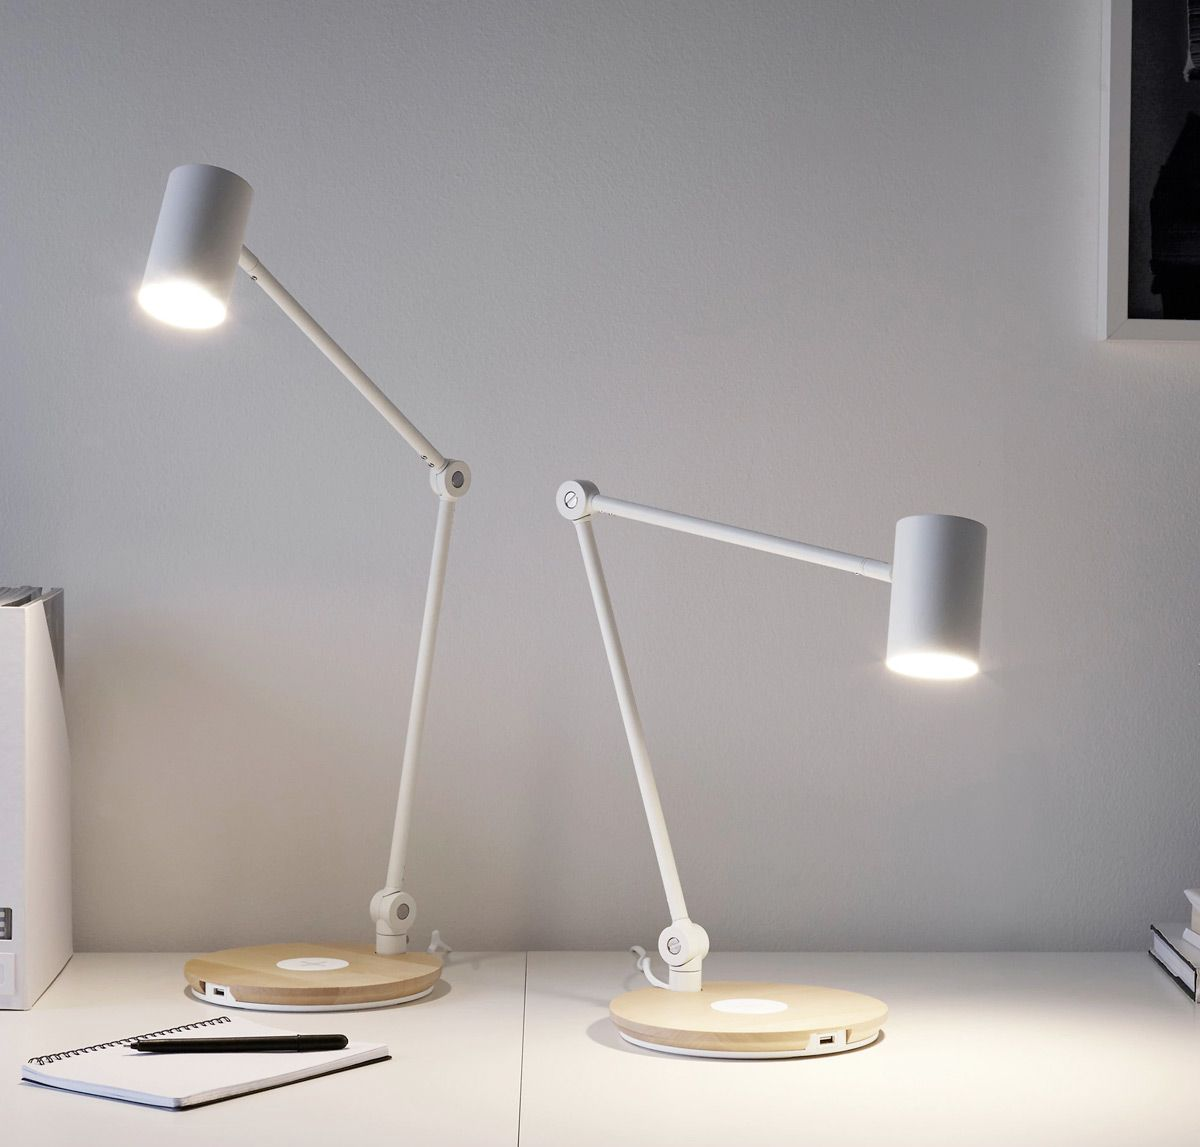 Cool Product Alert Furniture Accessories With Wireless Phone Charging Work Lamp Lamp Modern Lamp